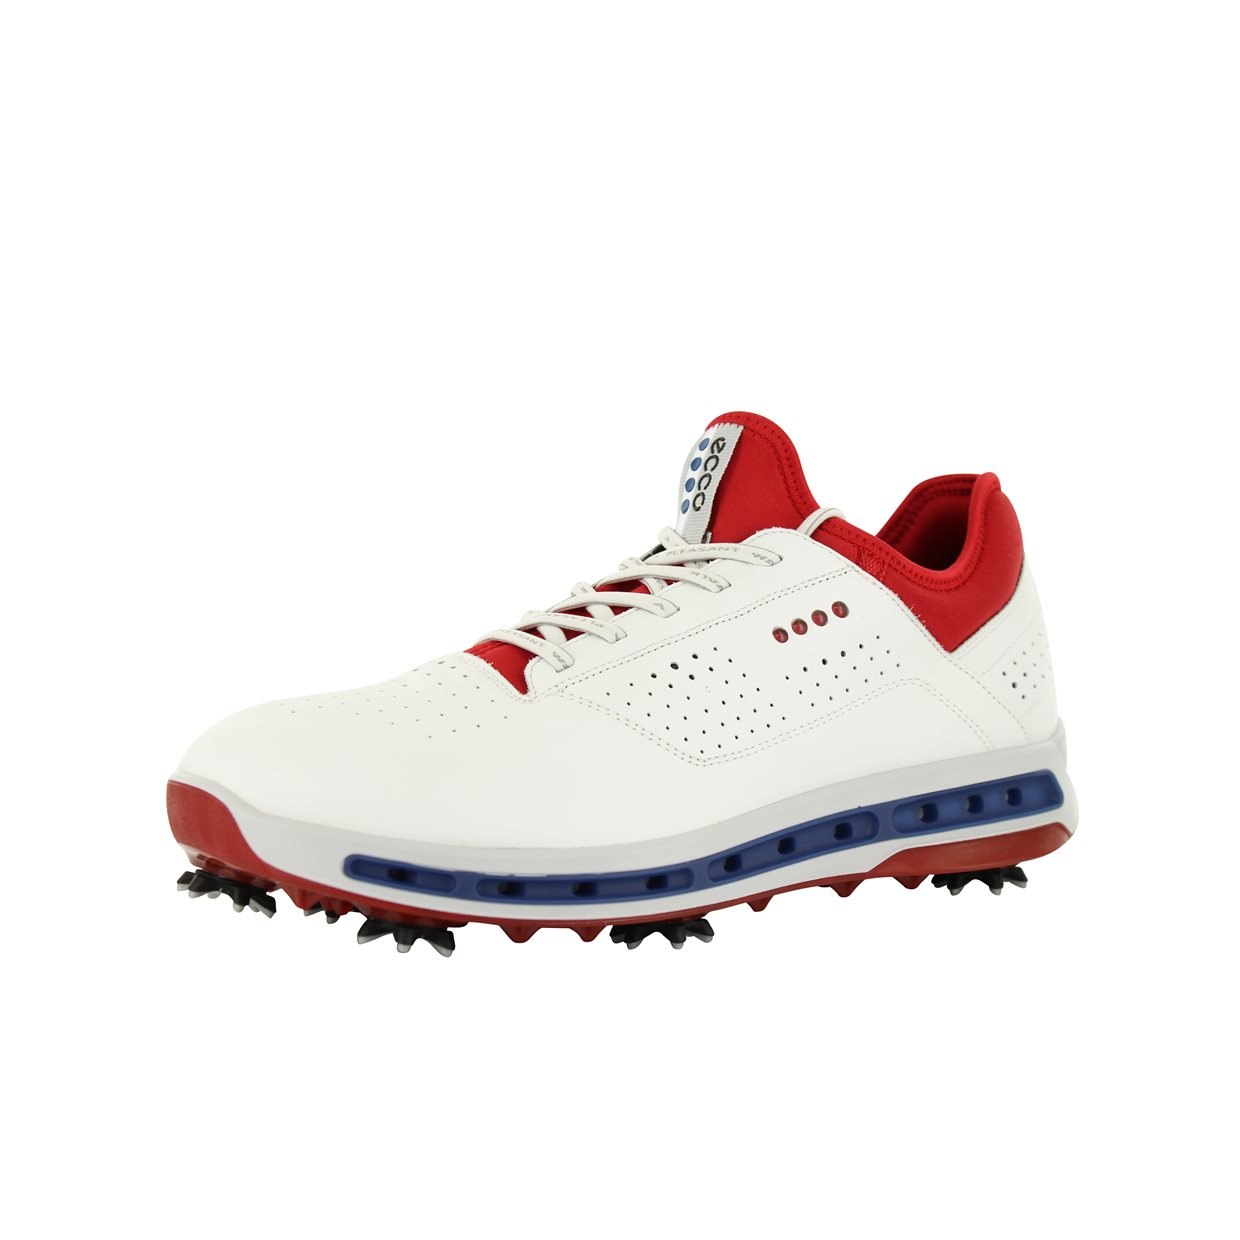 Ecco Golf Shoe Reviews